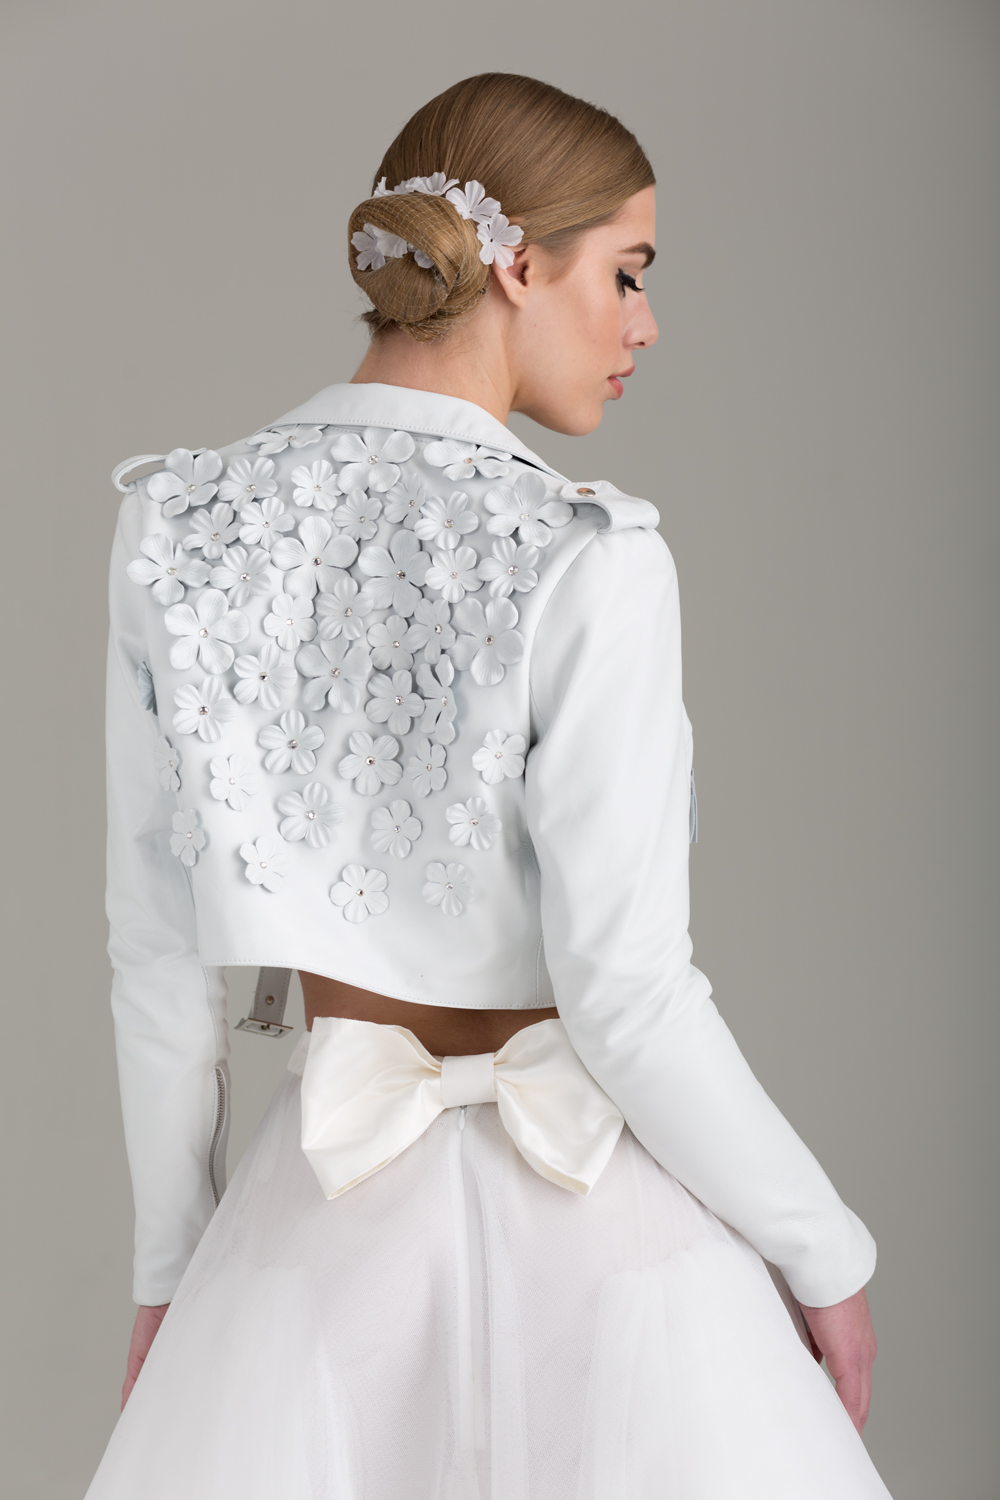 NKB17-84001    Nathalie Cropped Lambskin Leather MC Jacket Embellished w/ Hand-Made Leather Flowers & Swarovski Crystals;  NKB17-81002  Apoidea Satin and Mesh Crop Top &  NKB17-83005  Christina White Tulle Mesh A-line Skirt